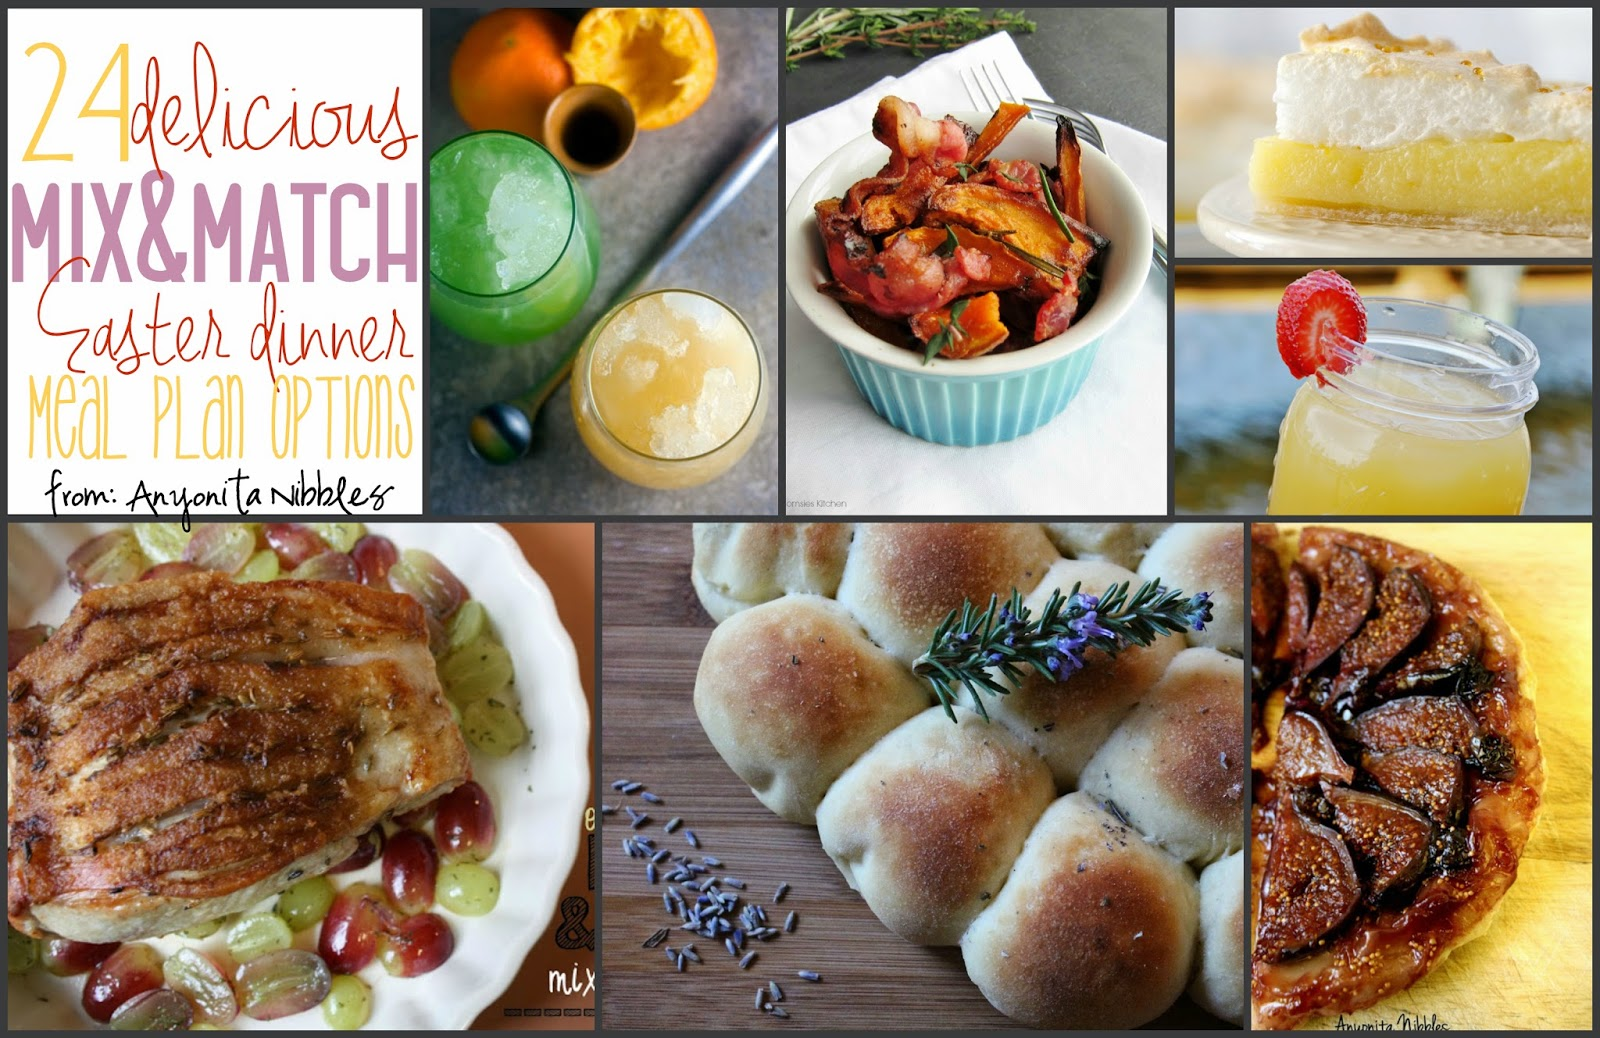 She has an amazing round up of Easter dinner options for you to mix & match! MUST PIN!